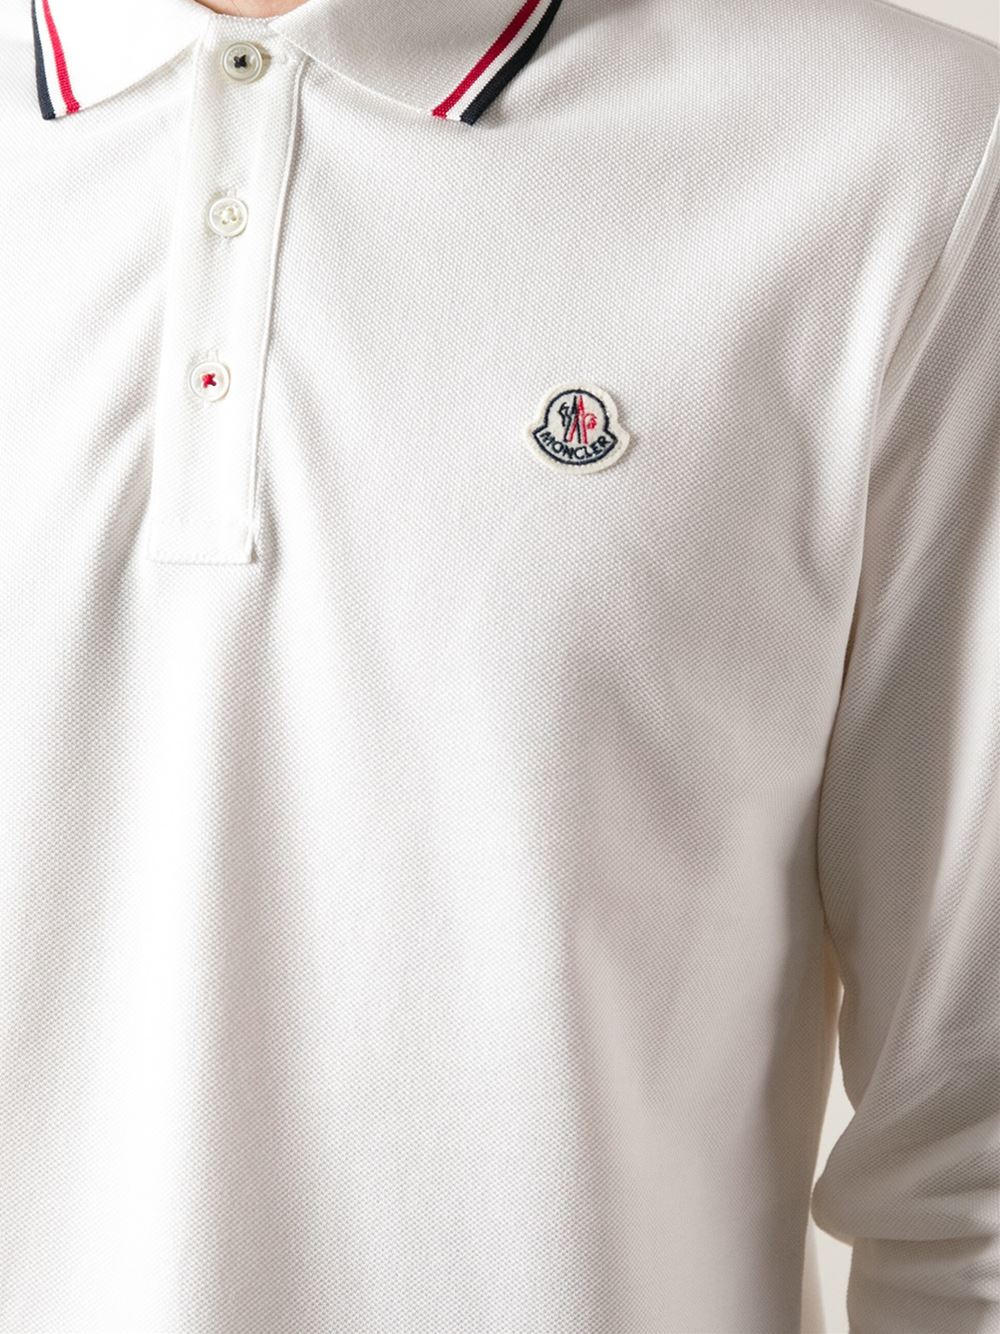 Up to $500 Gift Card with Moncler Apperal Purchase of $200 or more @ Neiman Marcus